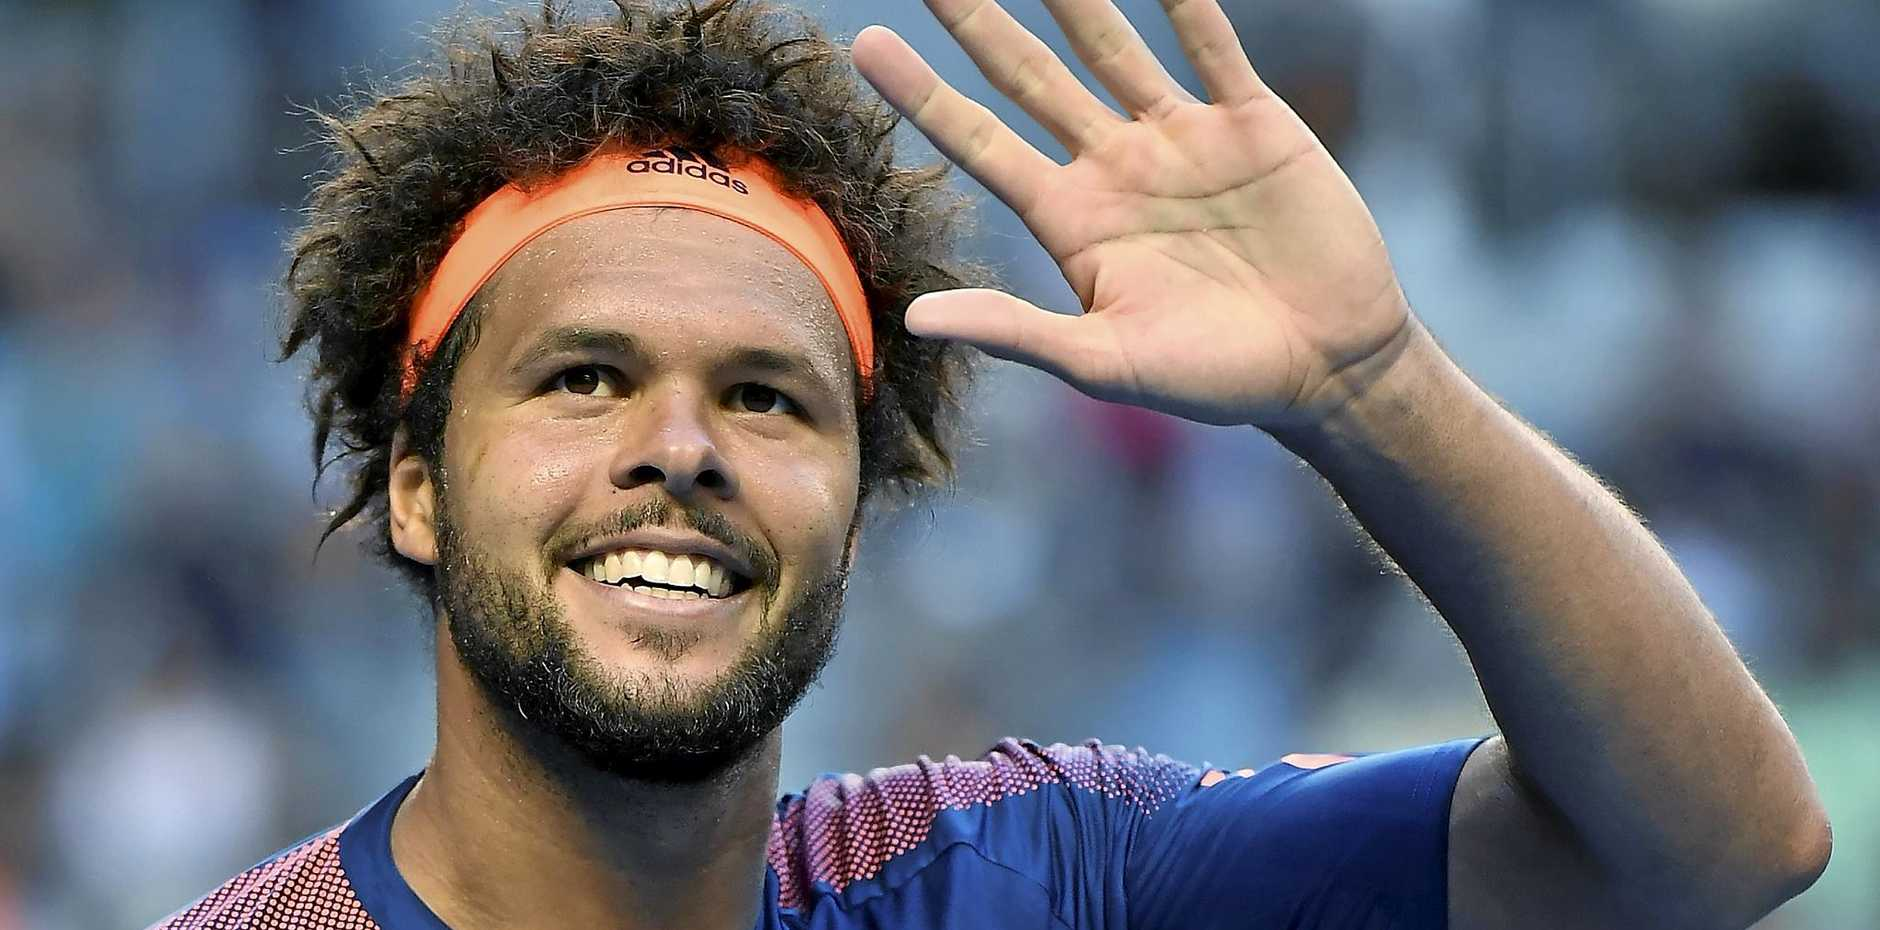 France's Jo-Wilfried Tsonga after defeating Britain's Daniel Evans during their fourth round match at the Australian Open